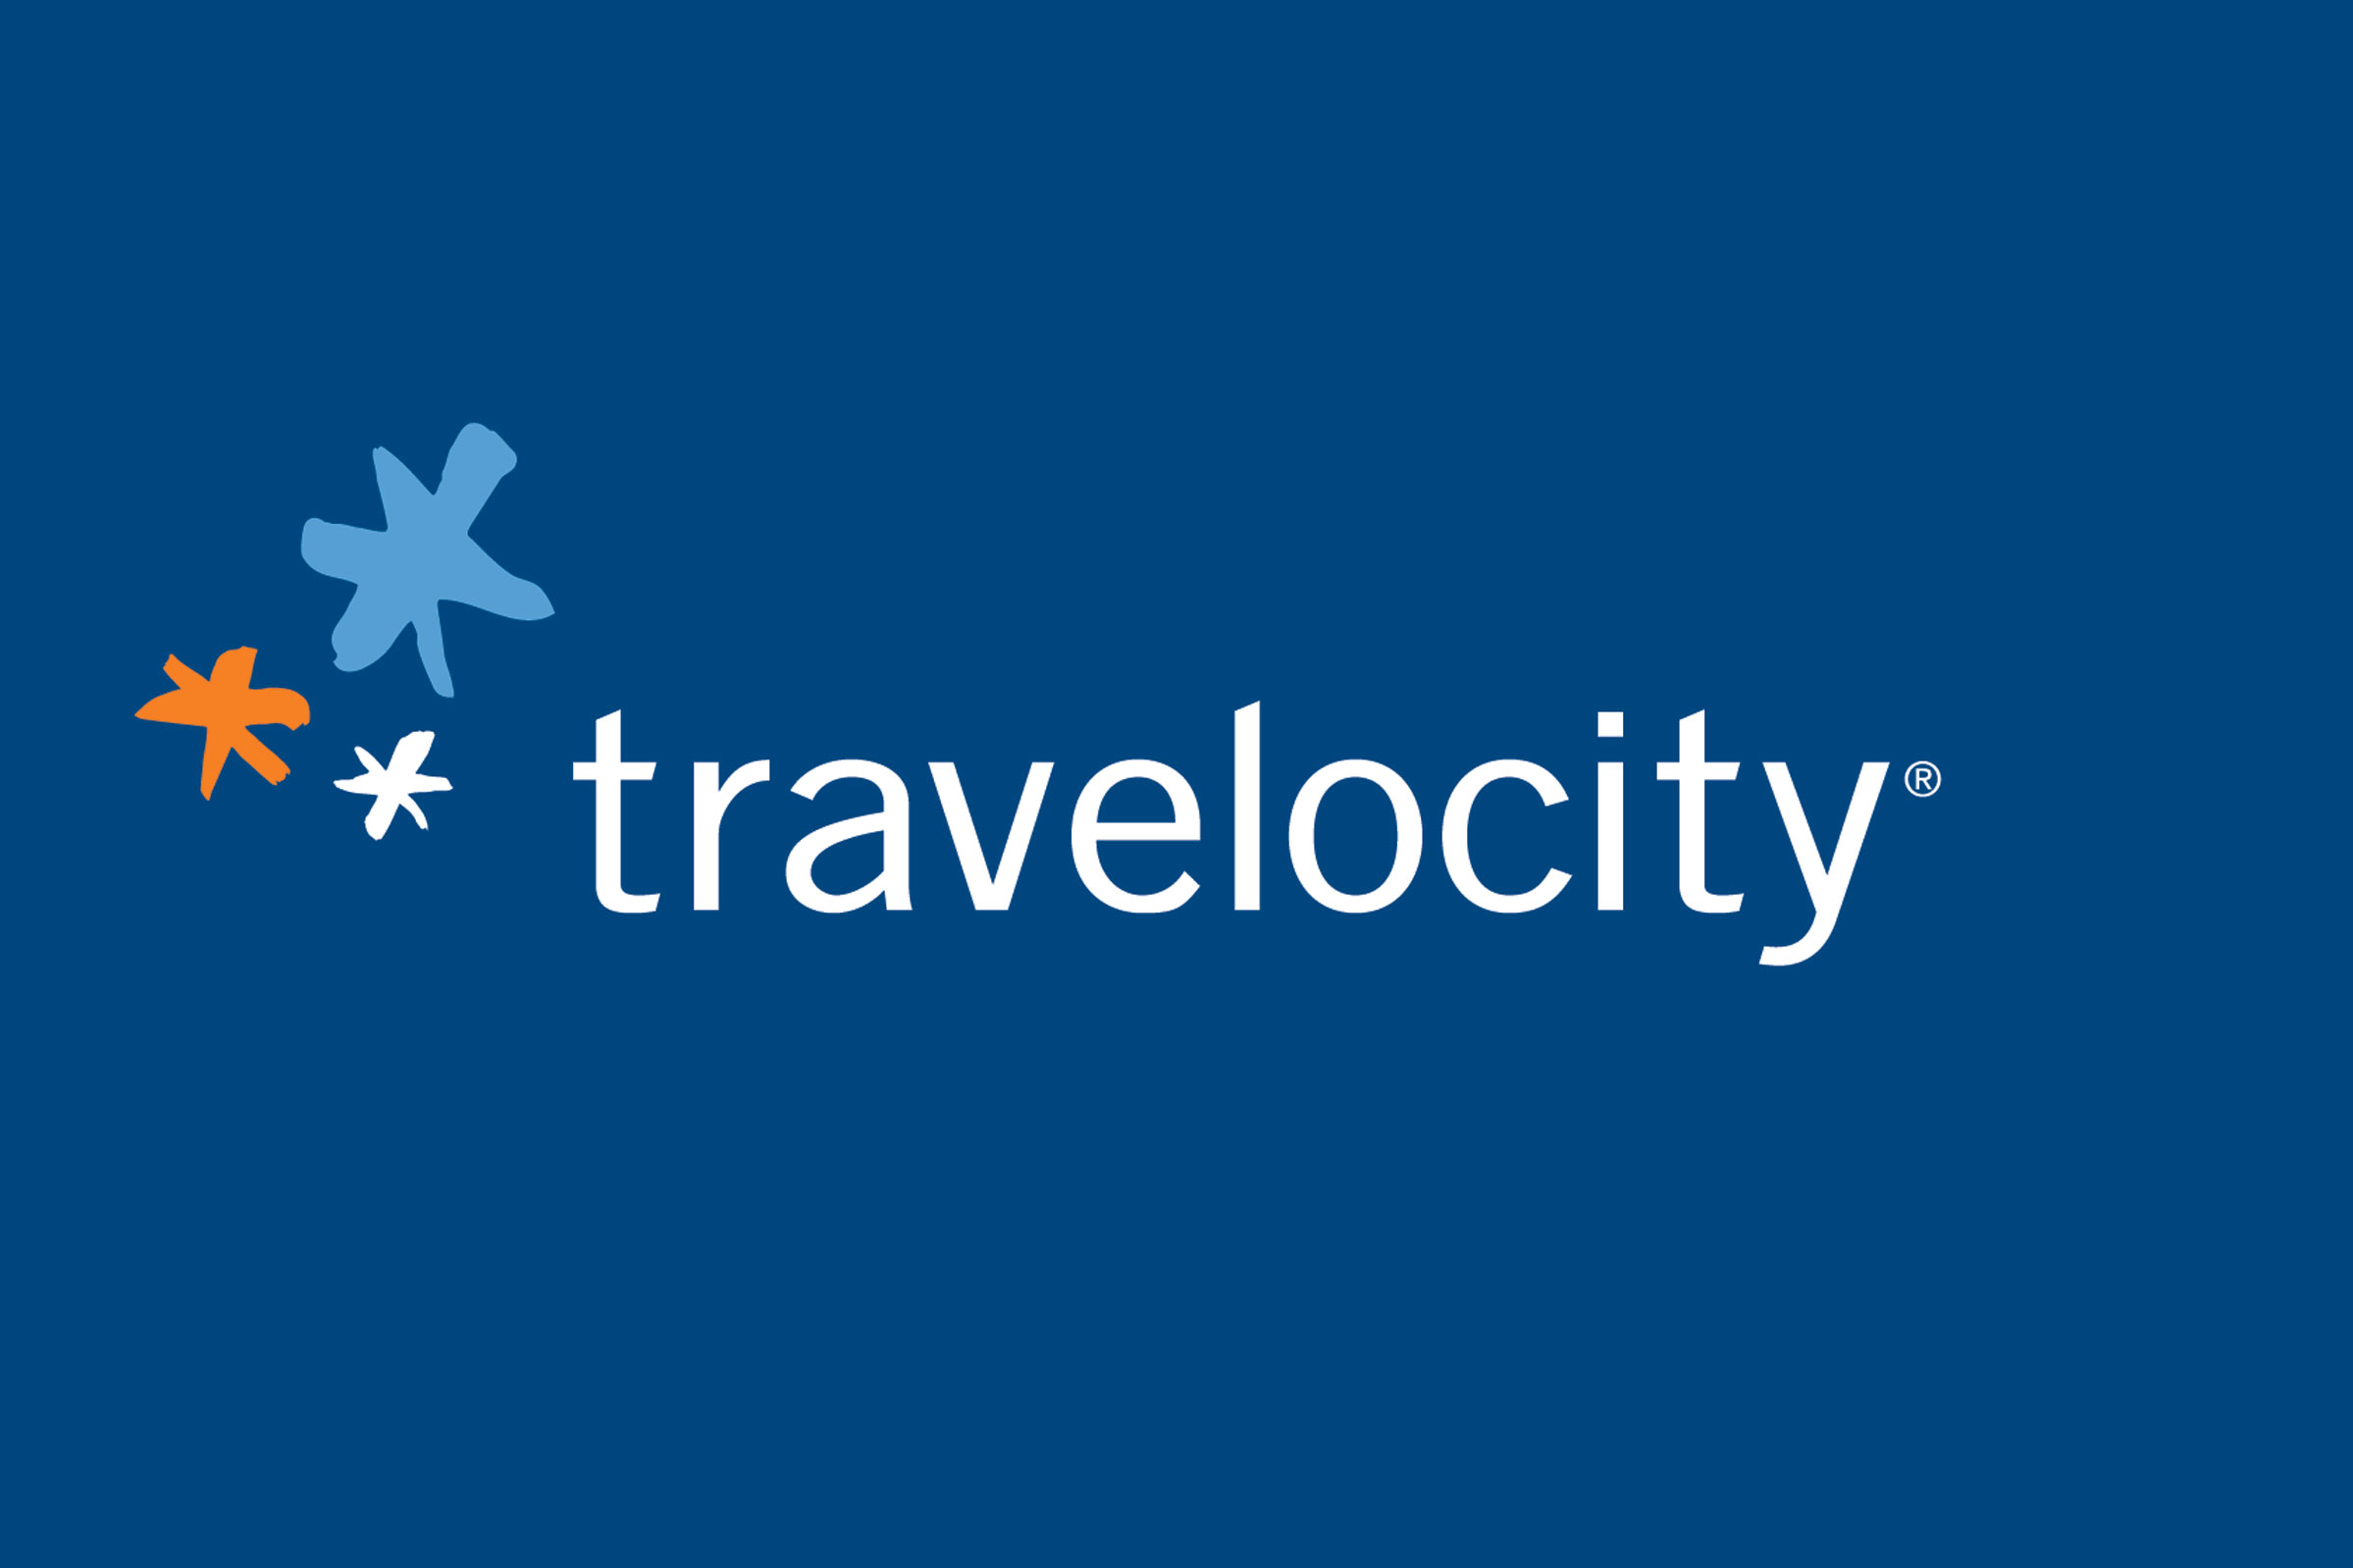 Travelocity ships media to Havas and creative to Proof Advertising